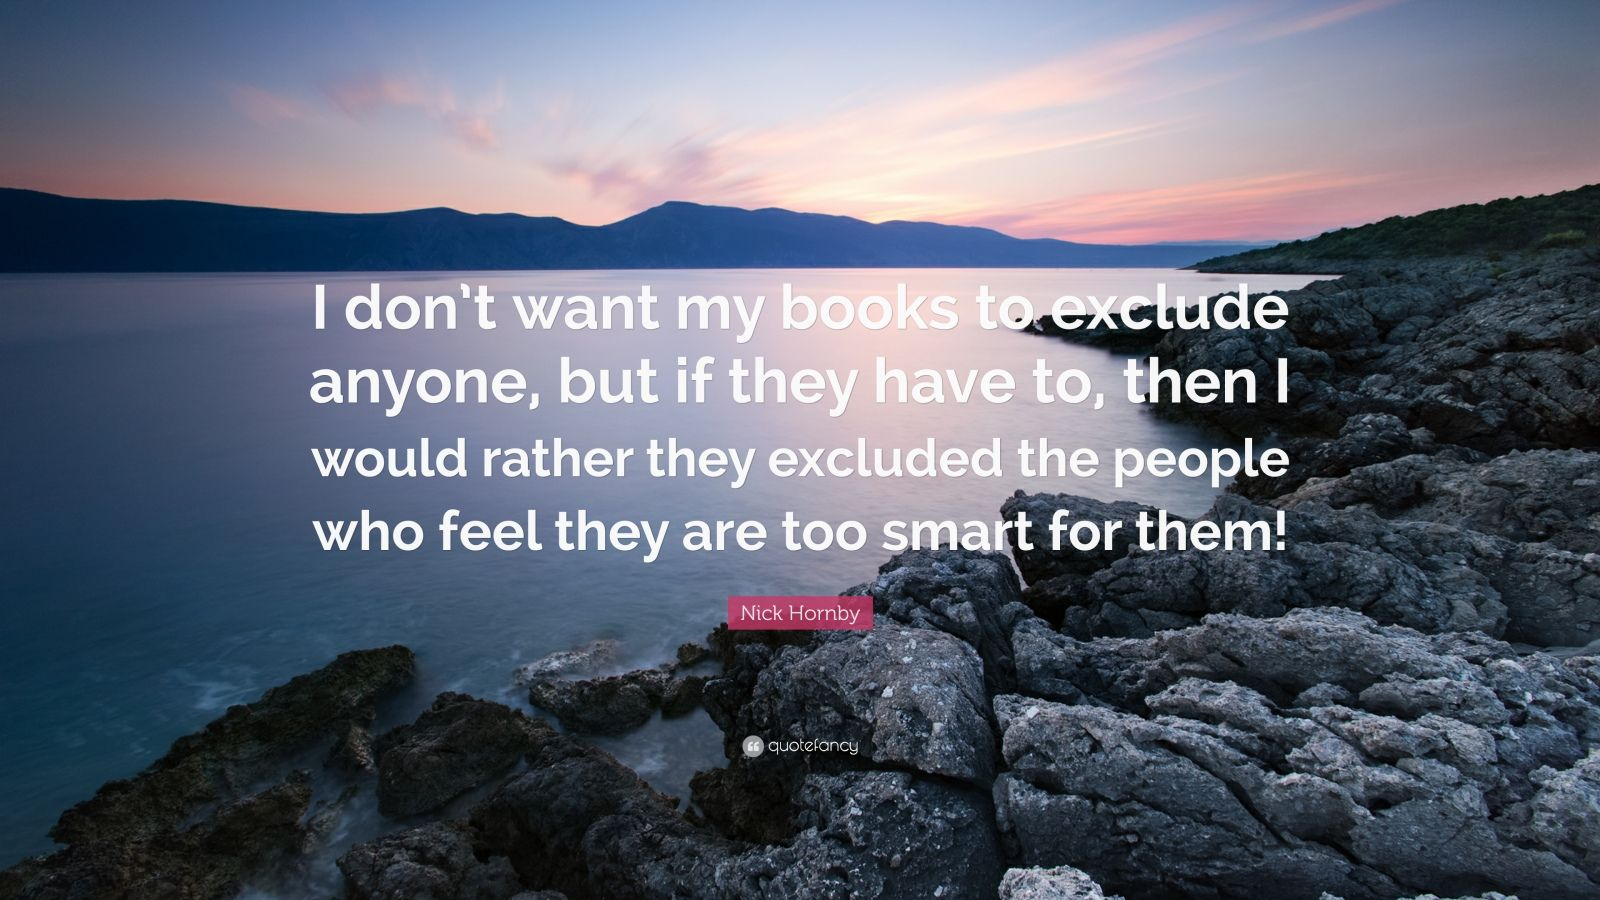 """Nick Hornby Quote: """"I don't want my books to exclude anyone, but if they have to, then I would rather they excluded the people who feel they are too smart for them!"""""""